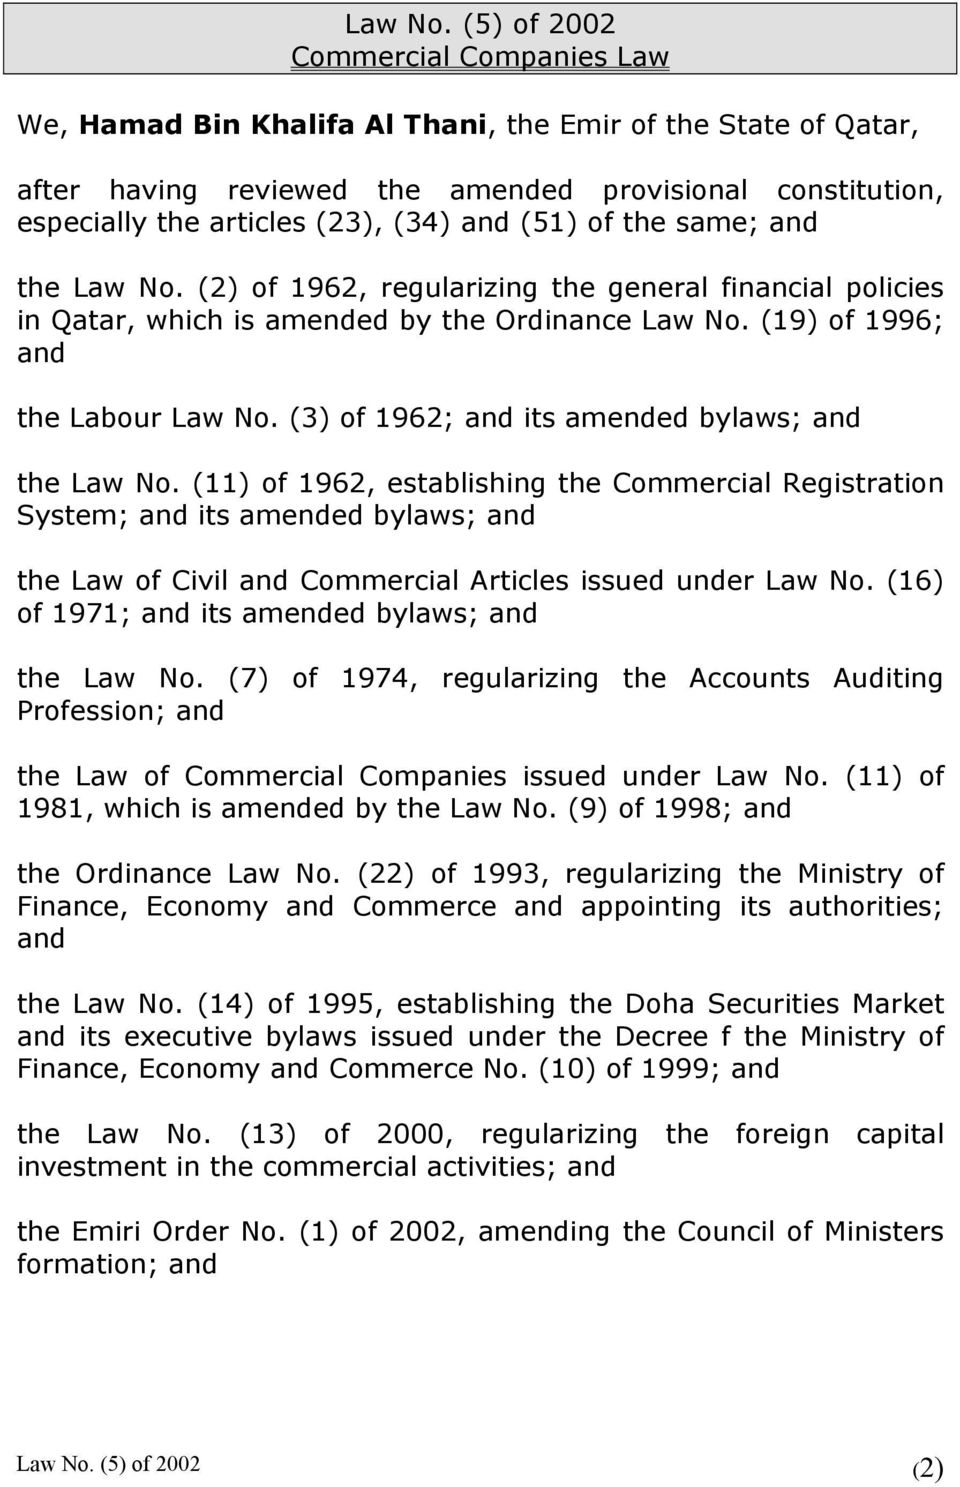 (51) of the same; and the  (2) of 1962, regularizing the general financial policies in Qatar, which is amended by the Ordinance  (19) of 1996; and the Labour  (3) of 1962; and its amended bylaws; and